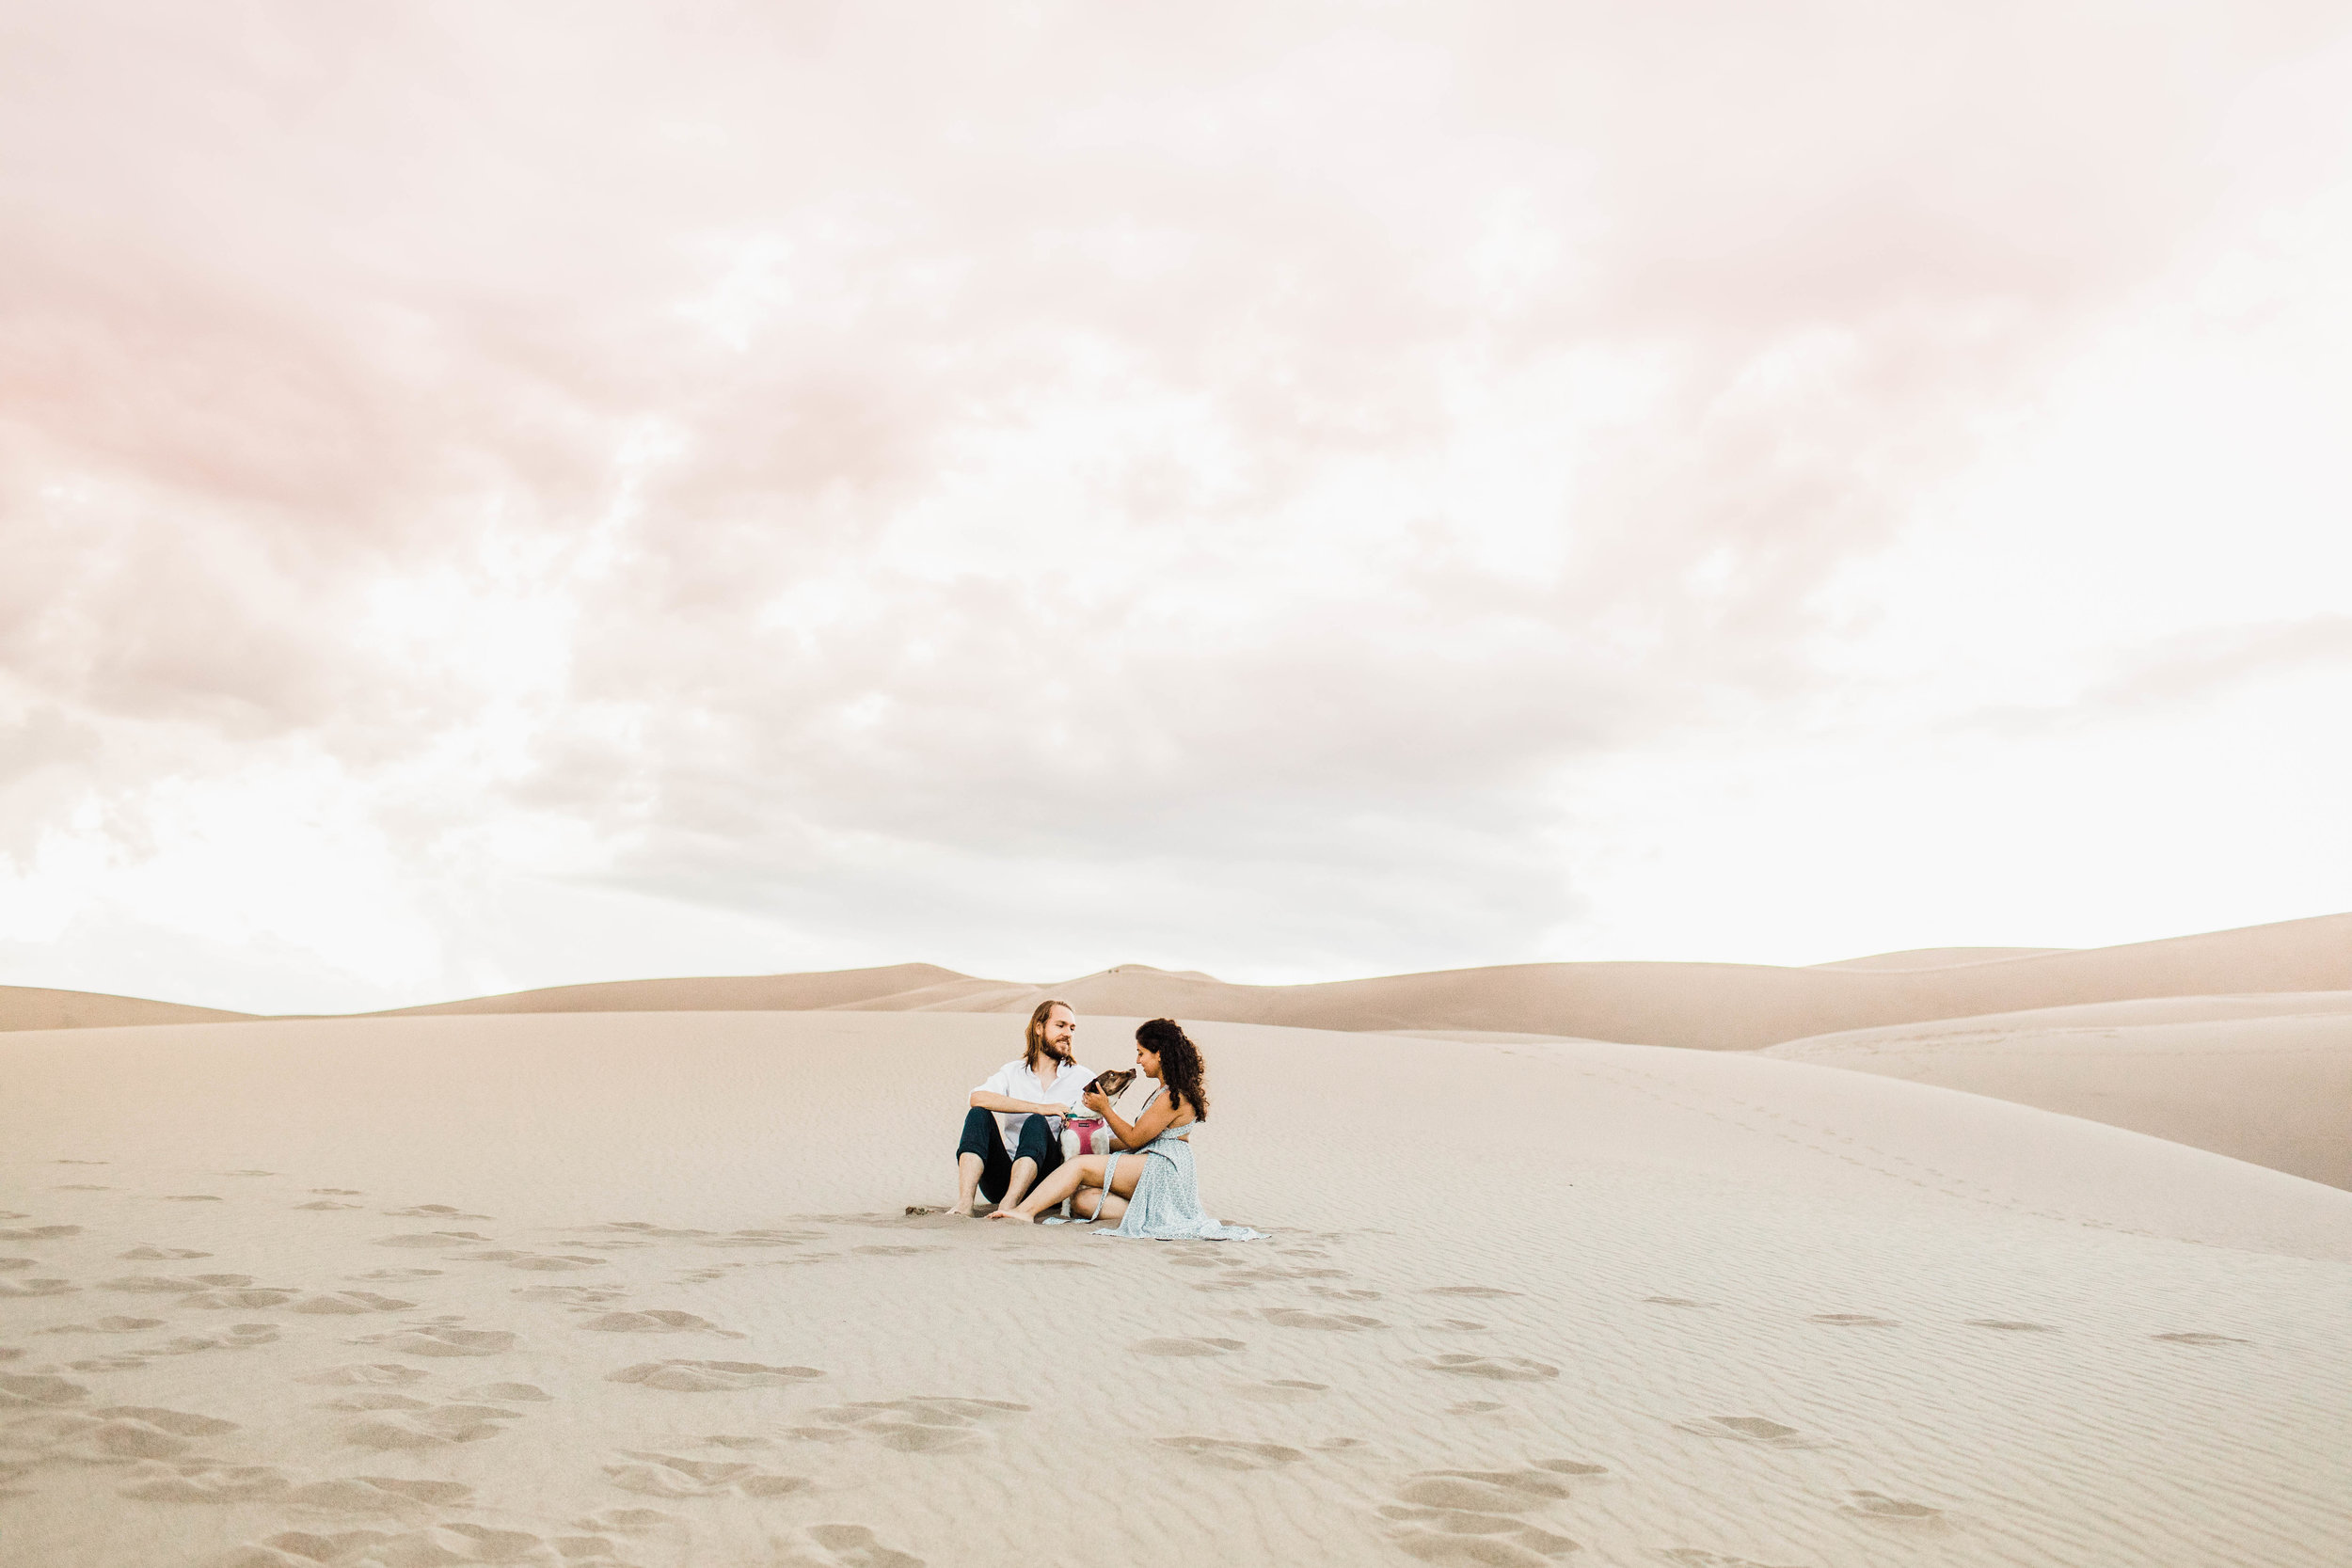 Sheena_Shahangian_Photography_Morocco_Sand_Dunes_Couples_Adventure_Session_Sheena_Ed-1.jpg